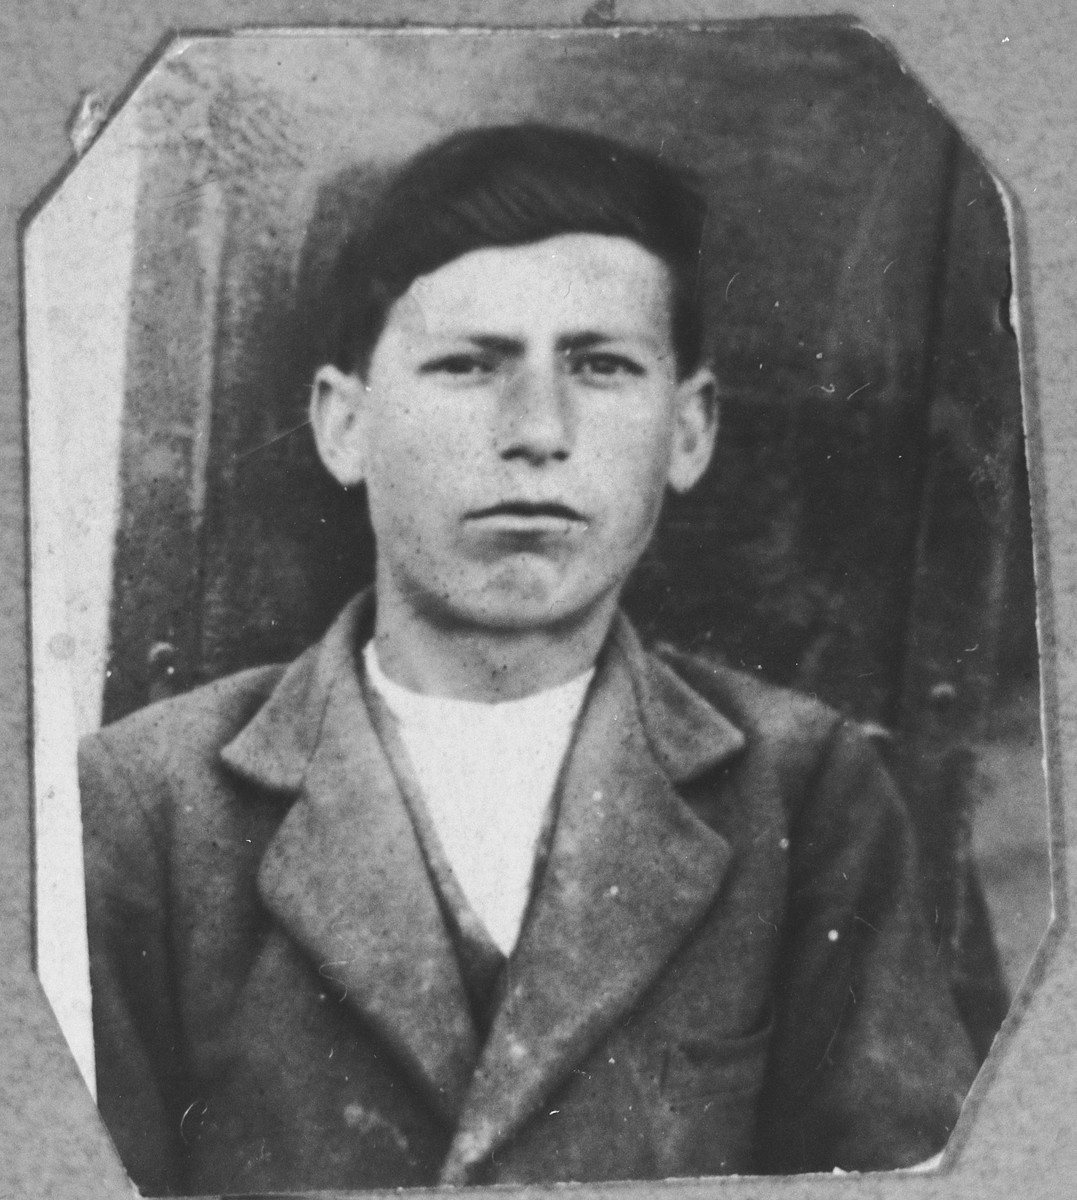 Portrait of Avram Hasson, son of Isak Hasson.  He was a miller.  He lived at Dalmatinska 49 in Bitola.